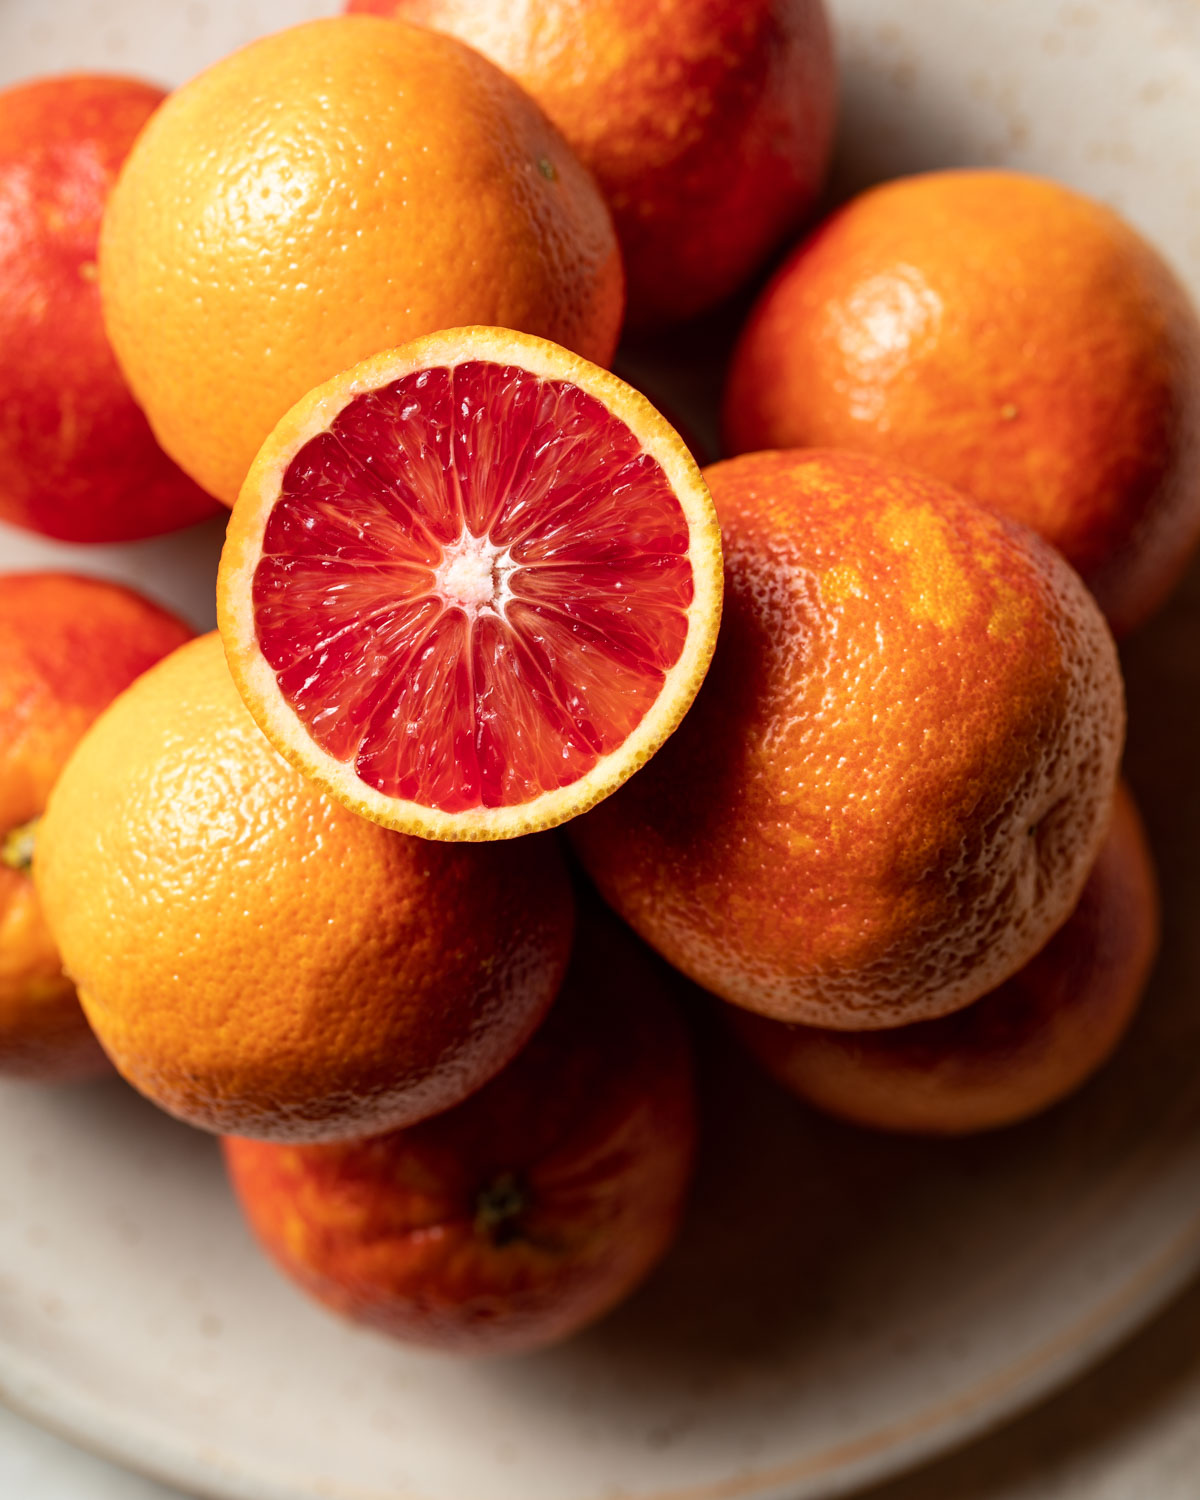 Vibrant blood oranges make a perfect topping for a buckwheat breakfast bowl.